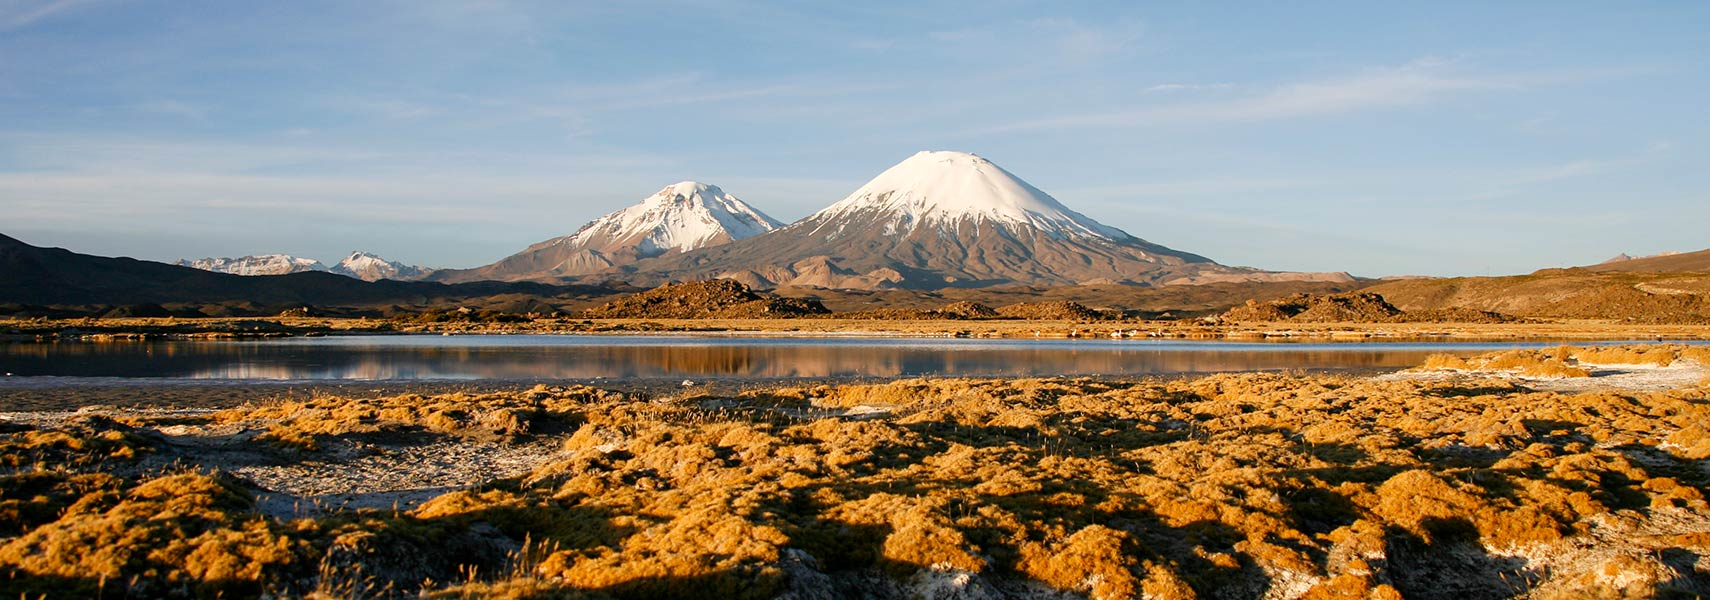 Parinacota Volcano and lake Chungara, Lauca National Park, Chile